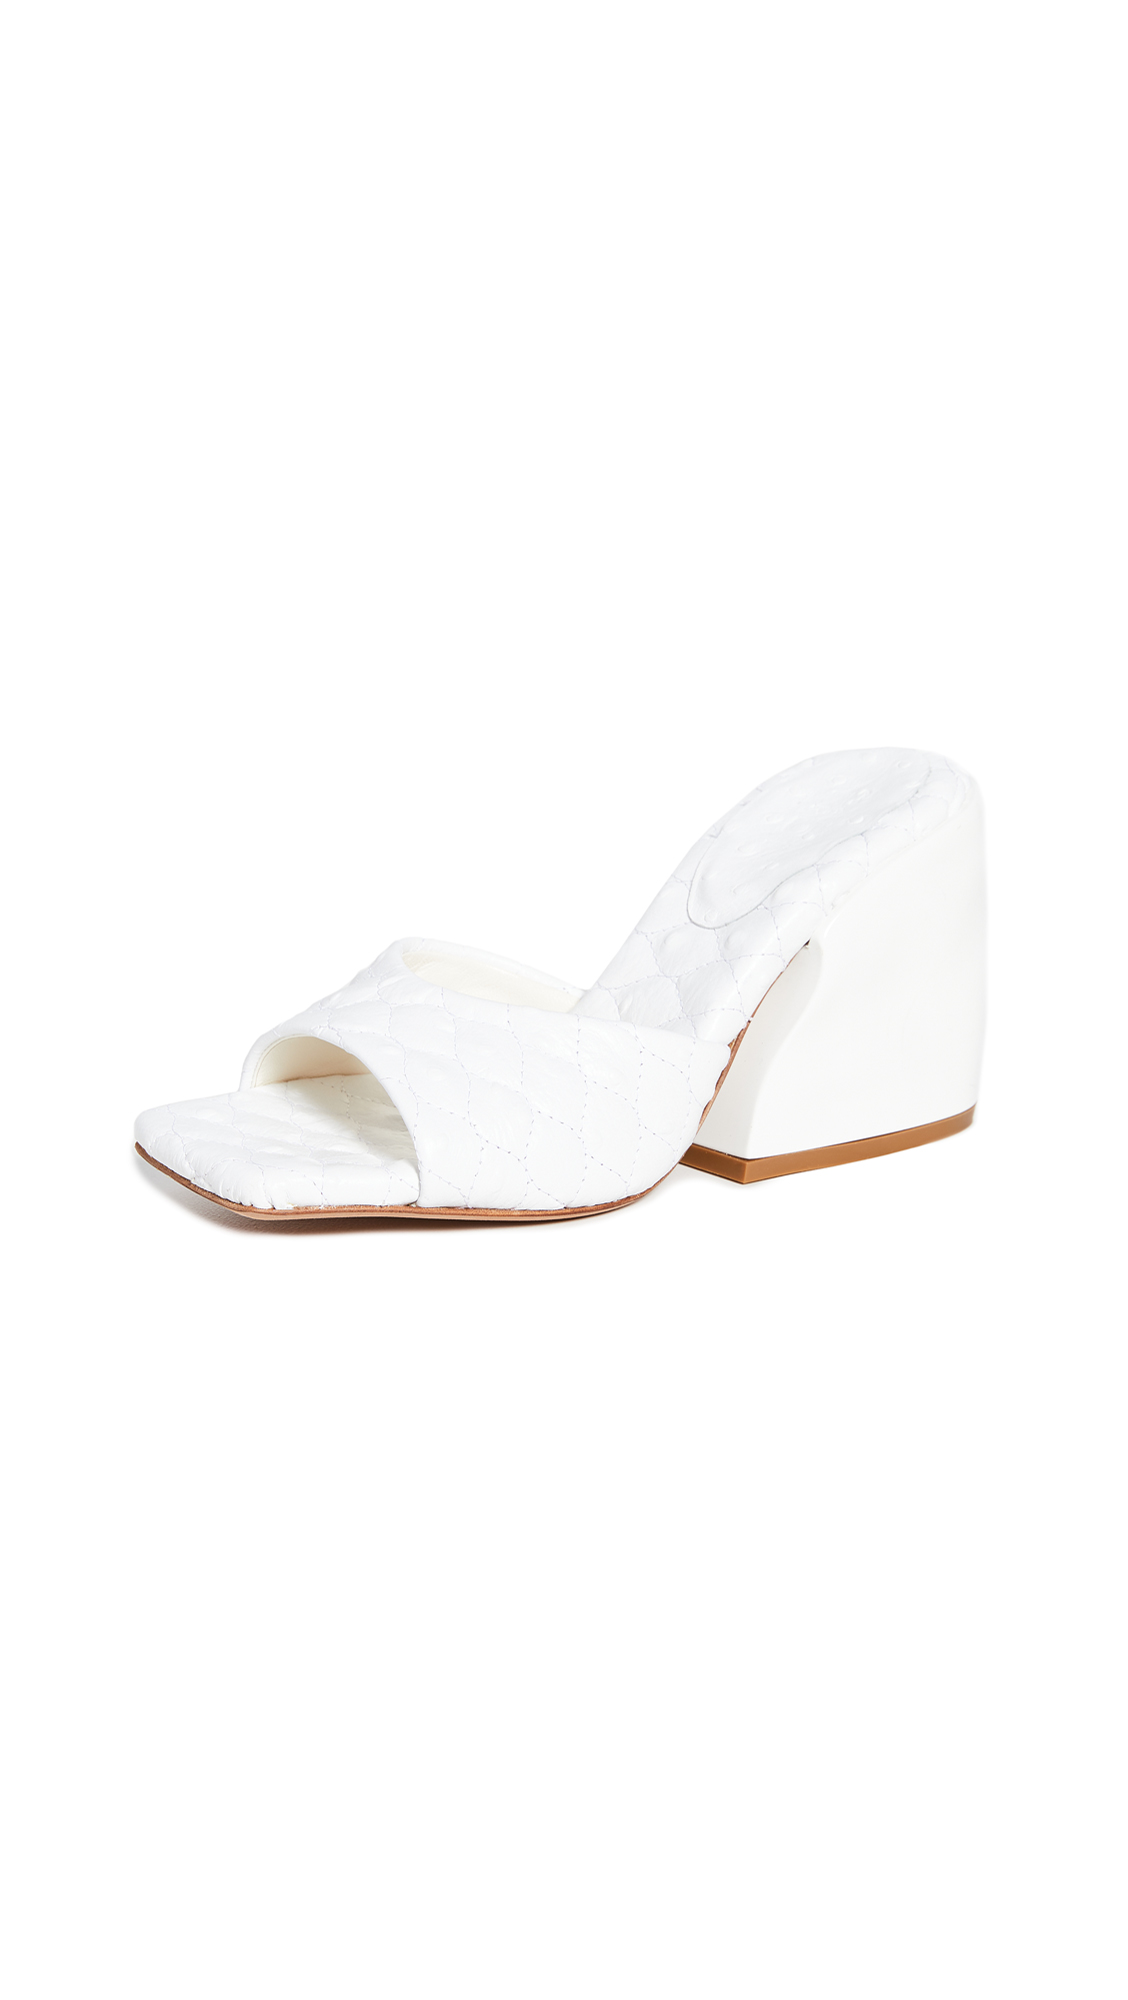 Tibi Kenji Quilted Sandals - 50% Off Sale